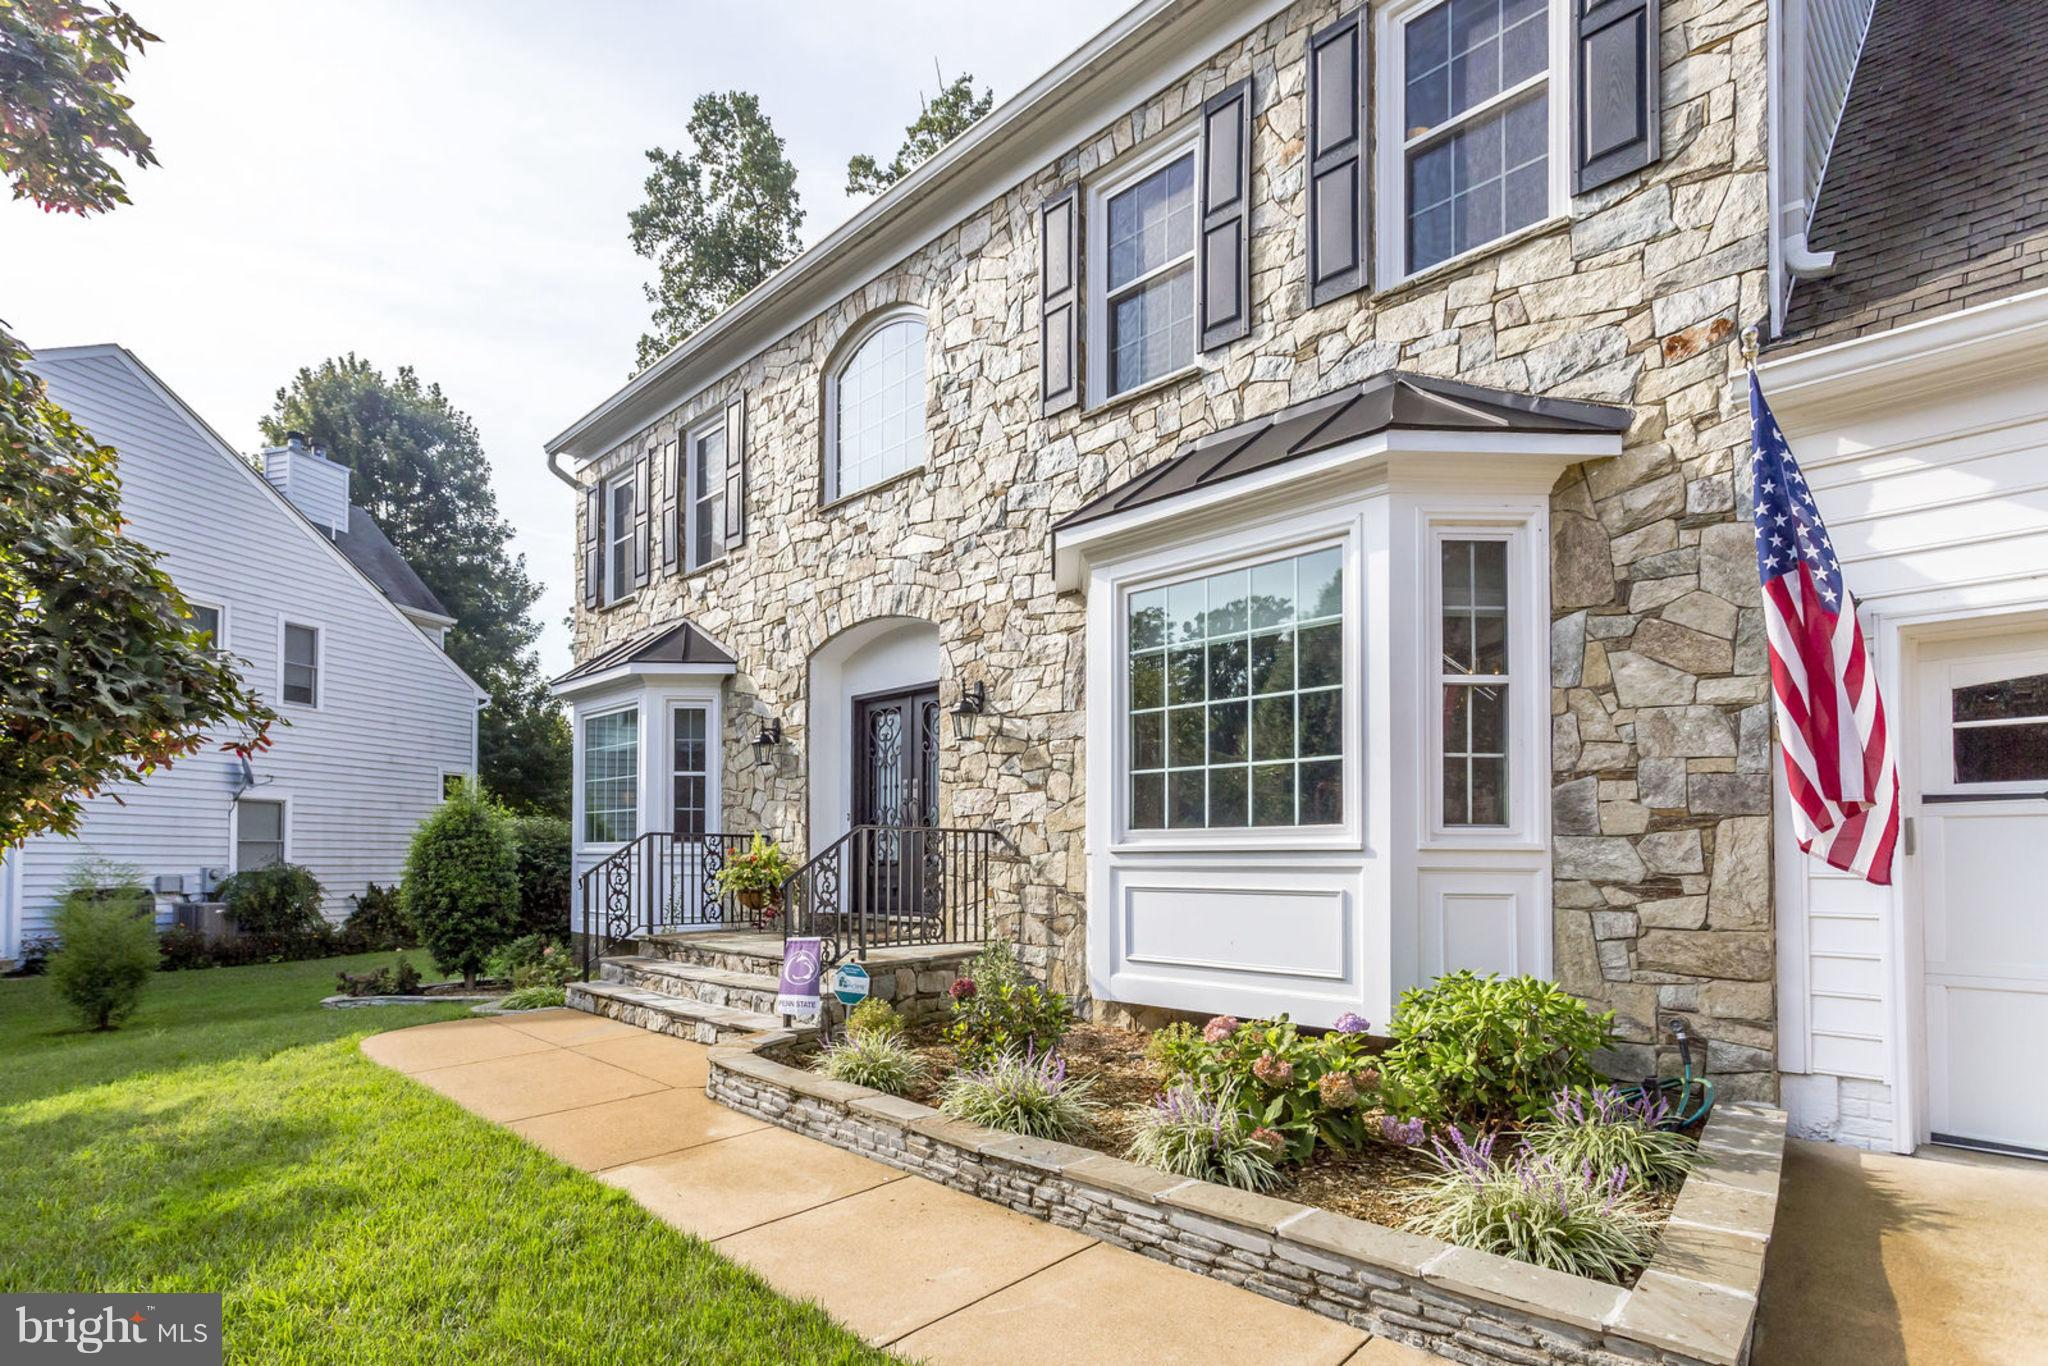 NEW PRICE! WALK IN WITH $20K IN INSTANT EQUITY! Appraisal on 9/24 at $890K from local appraiser. This 5K+ sq.ft, 6-bed 3/2 bath custom MORRIS built home is on a coveted cul-de-sac  in Bush Hill Woods. Lux. upgrades: $30K+ custom HE windows/doors, kitch, upgrad. electrical, hardscape, 2-zone HVAC ('14), 9'Ceils, covered porch, yard w/ BI Grill, GR w/ built ins, ML laundry, 2car gar, mins to METRO!